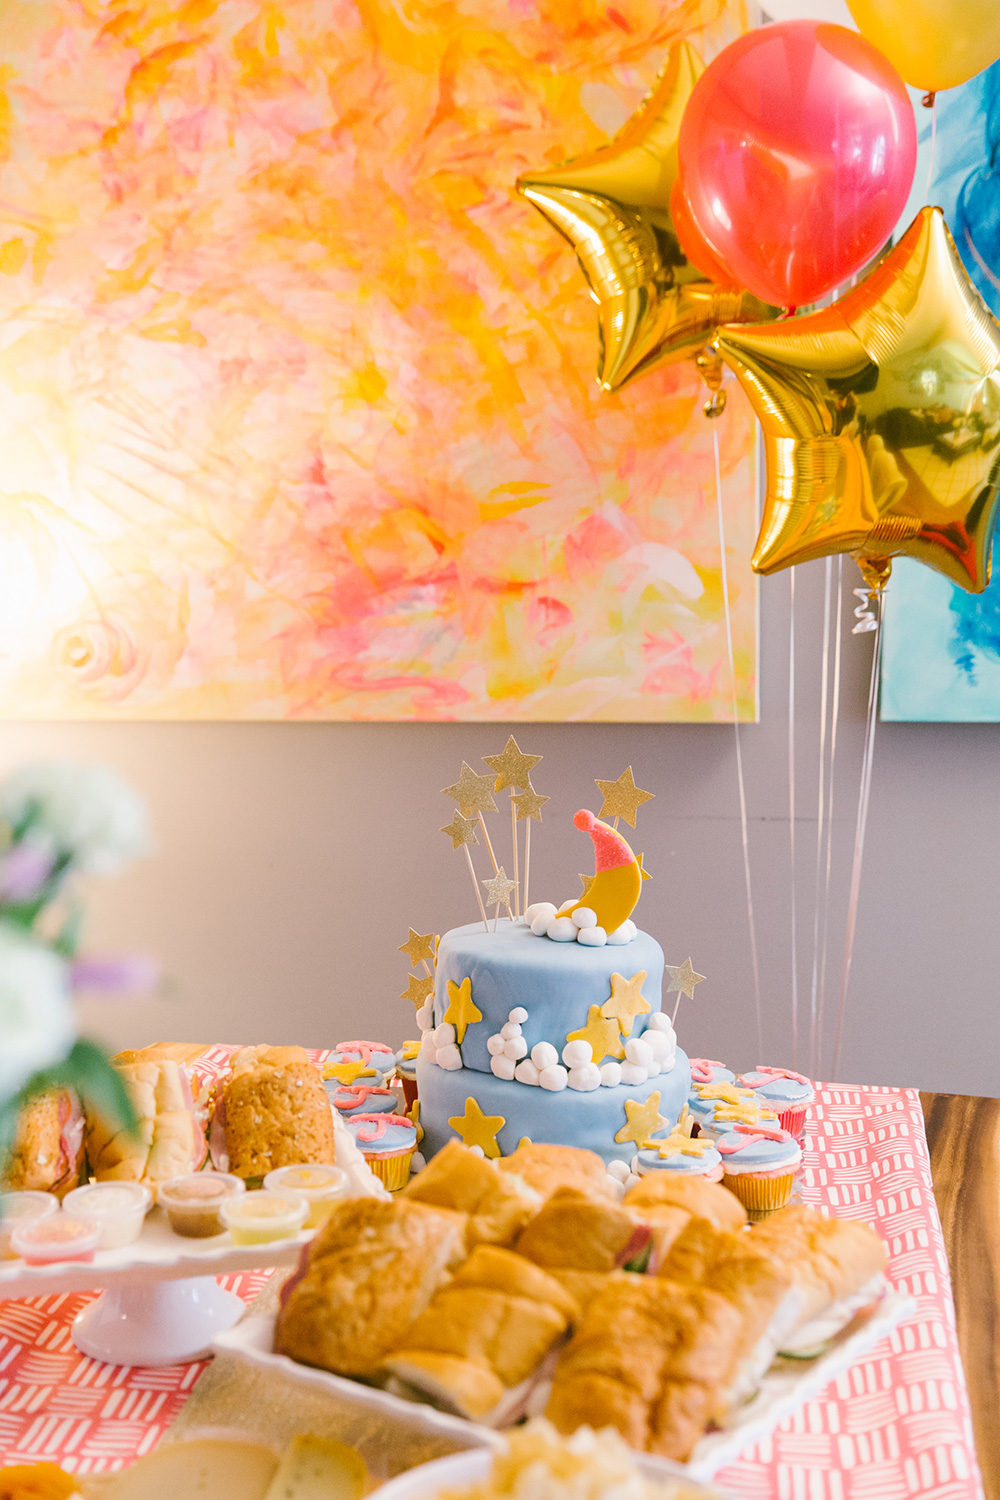 WEB_2015_April_BabyShower_EuniceDockery_0026.jpg